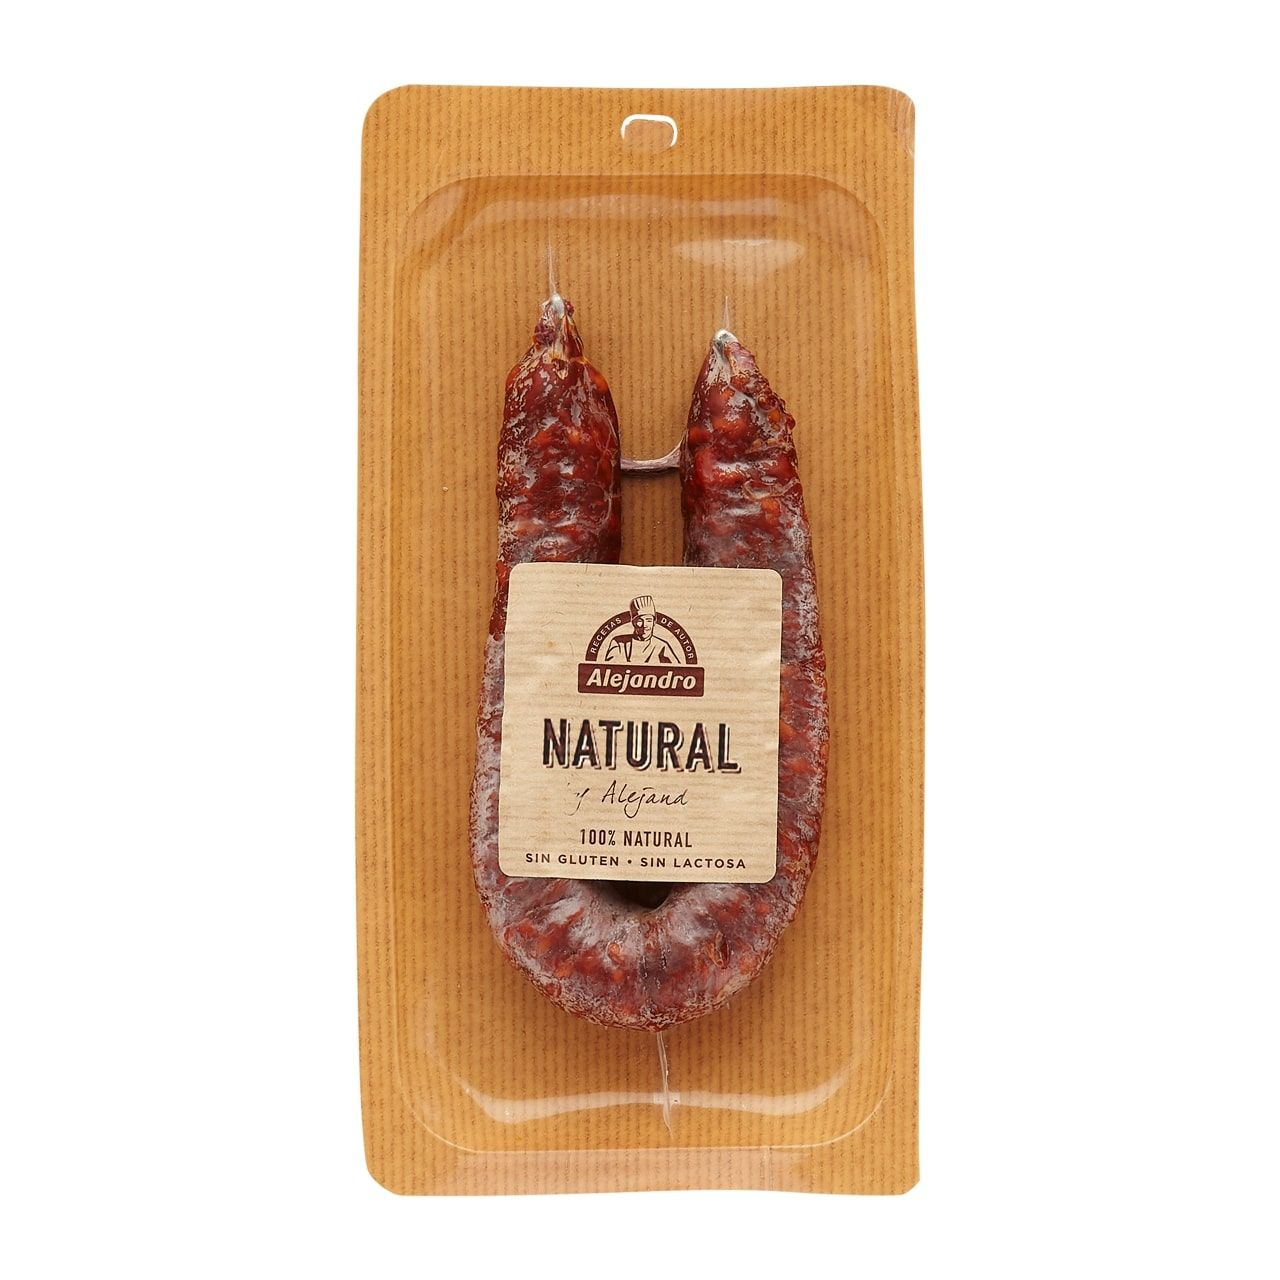 Alejandro Semi-cured Chorizo